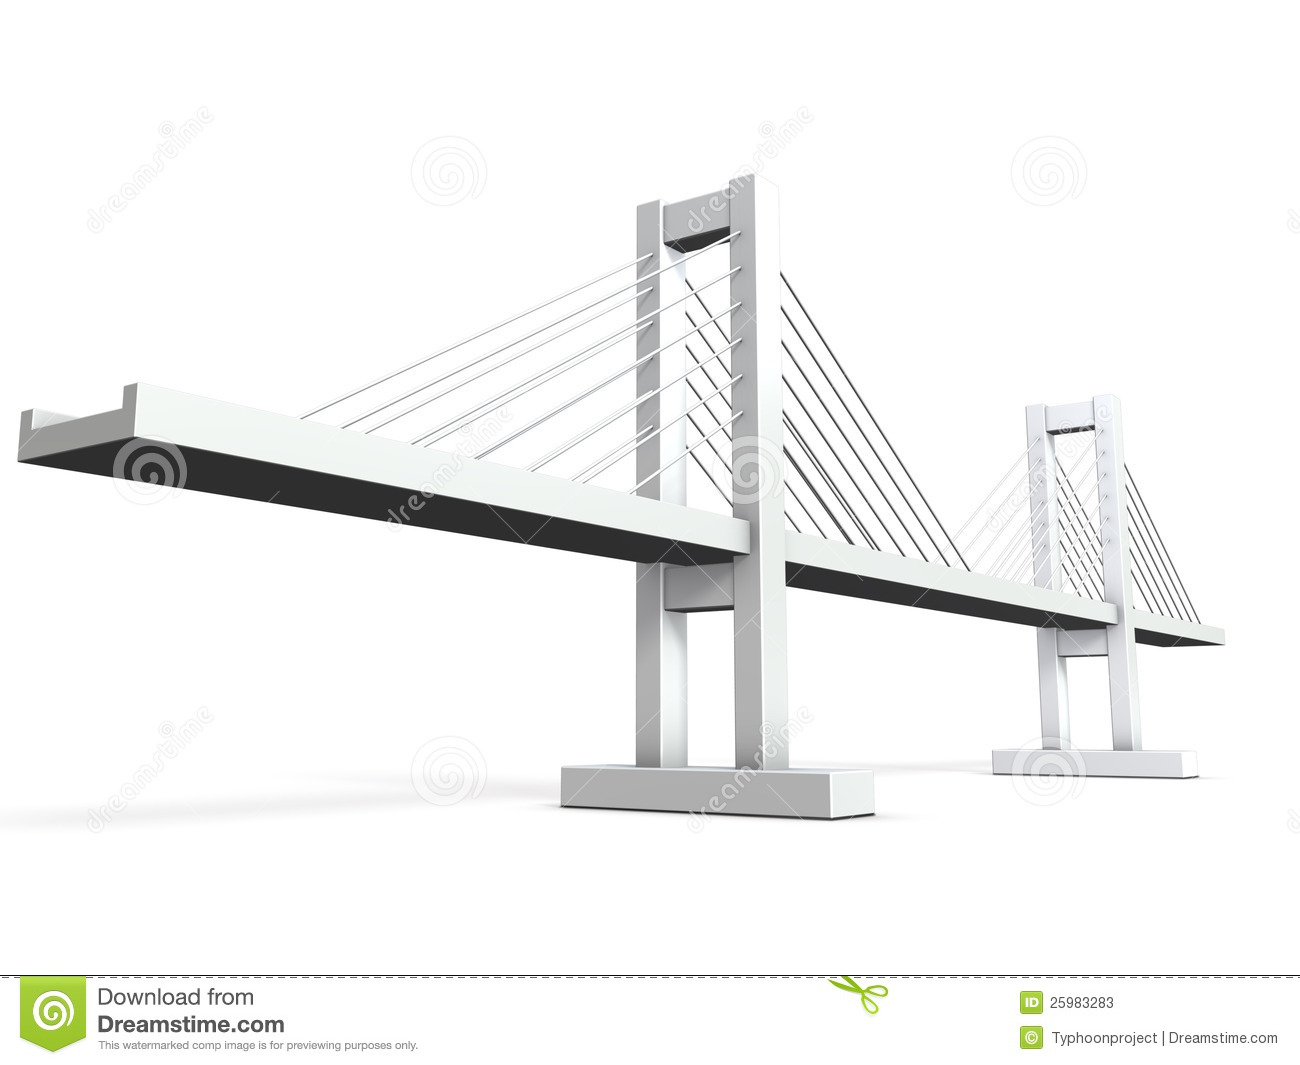 Architectural Models Of Cable-stayed Bridge Stock